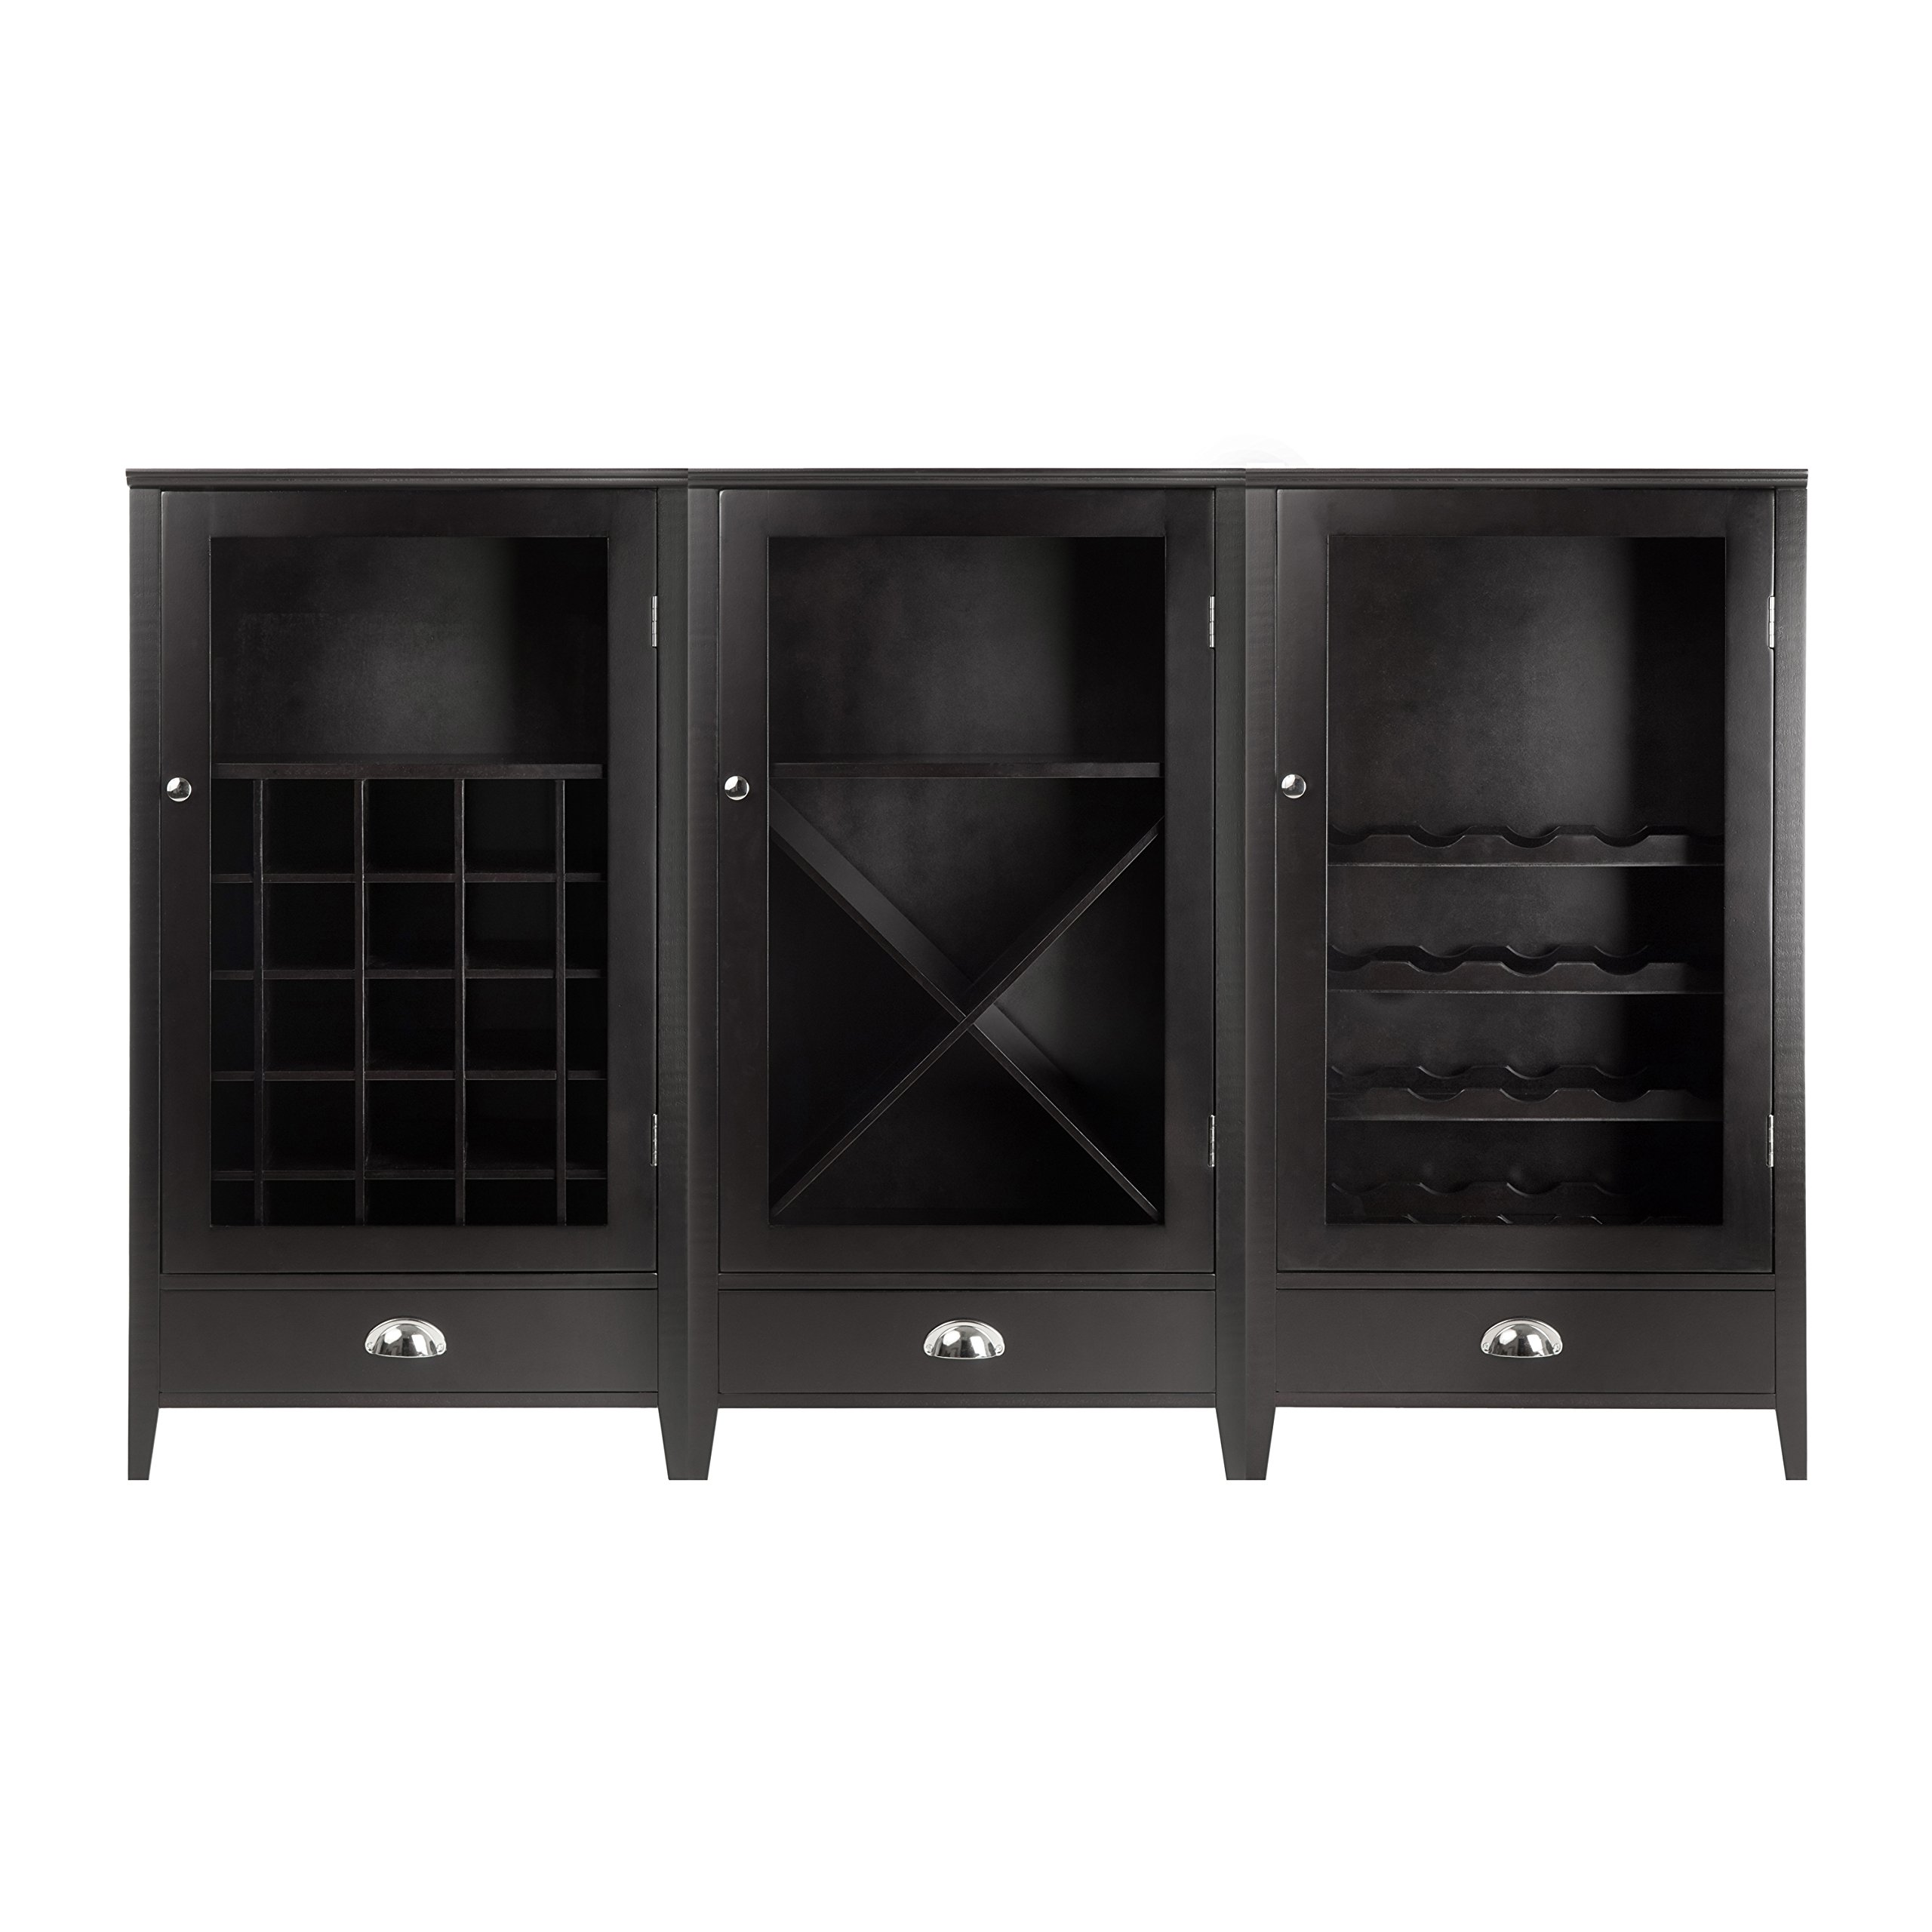 Winsome Wood 3-Piece Wine Cabinet Modular Set by Winsome